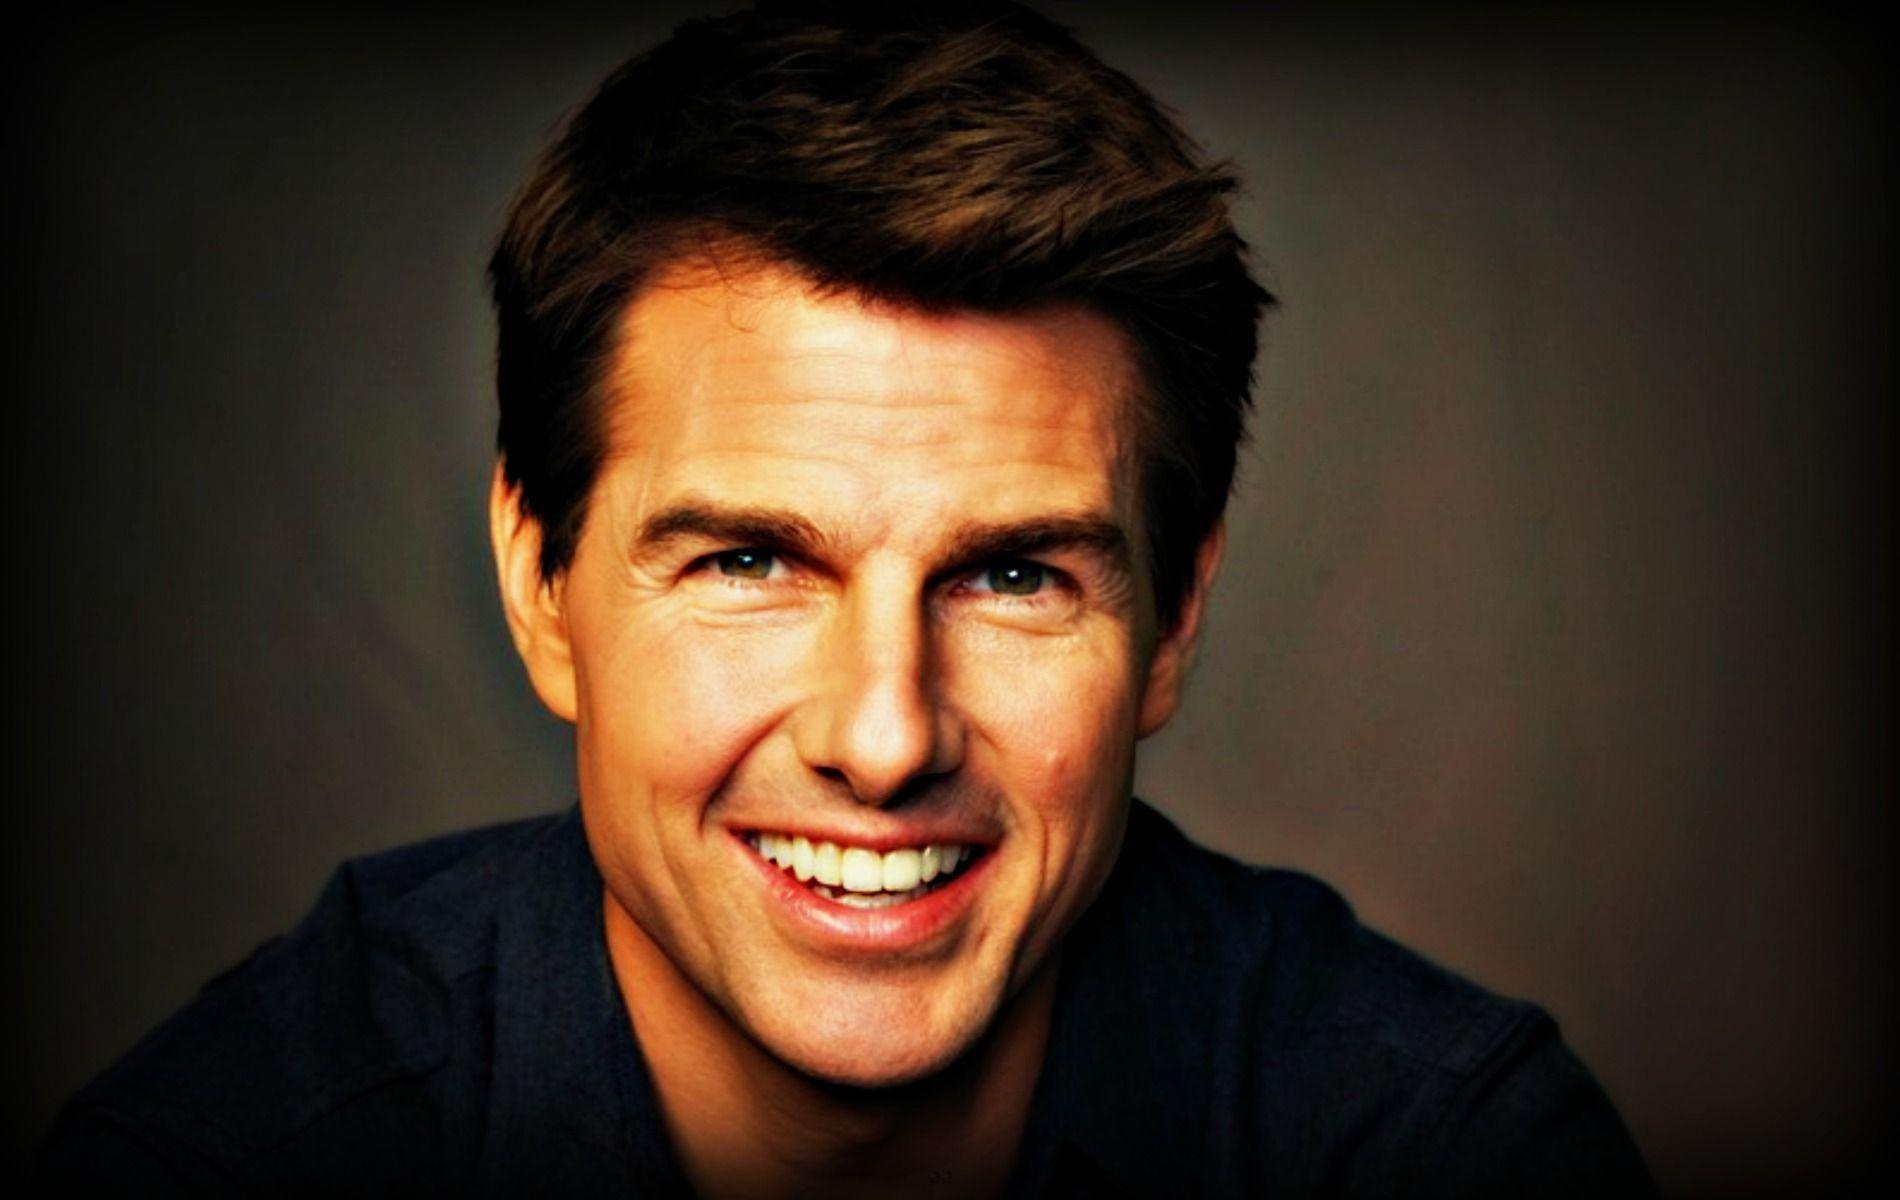 Tom Cruise Wallpapers High Resolution and Quality DownloadTom Cruise